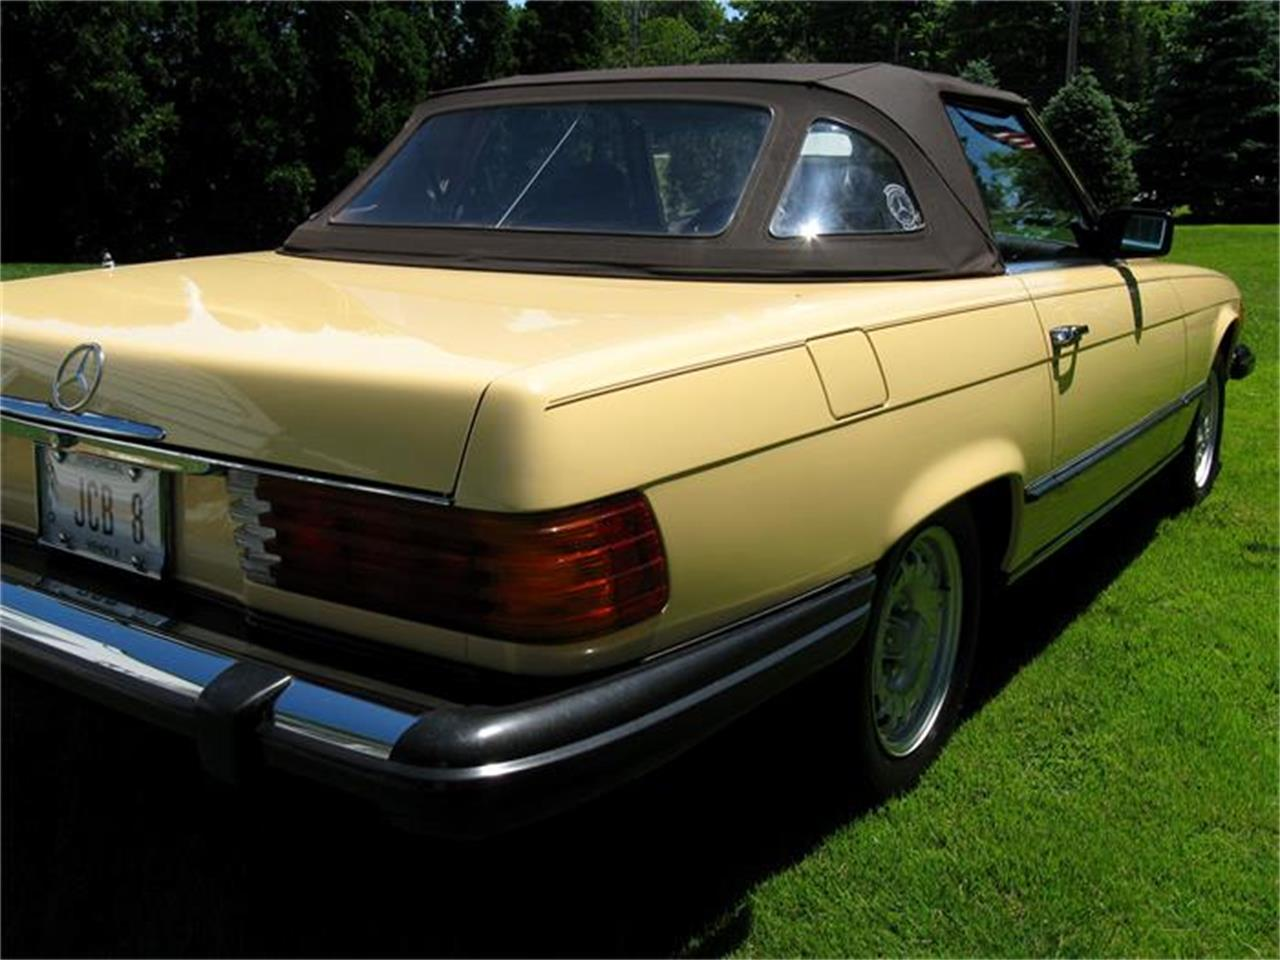 Large Picture of '82 Mercedes-Benz 380SL - $29,900.00 Offered by Affordable Classic Motorcars - BS6W